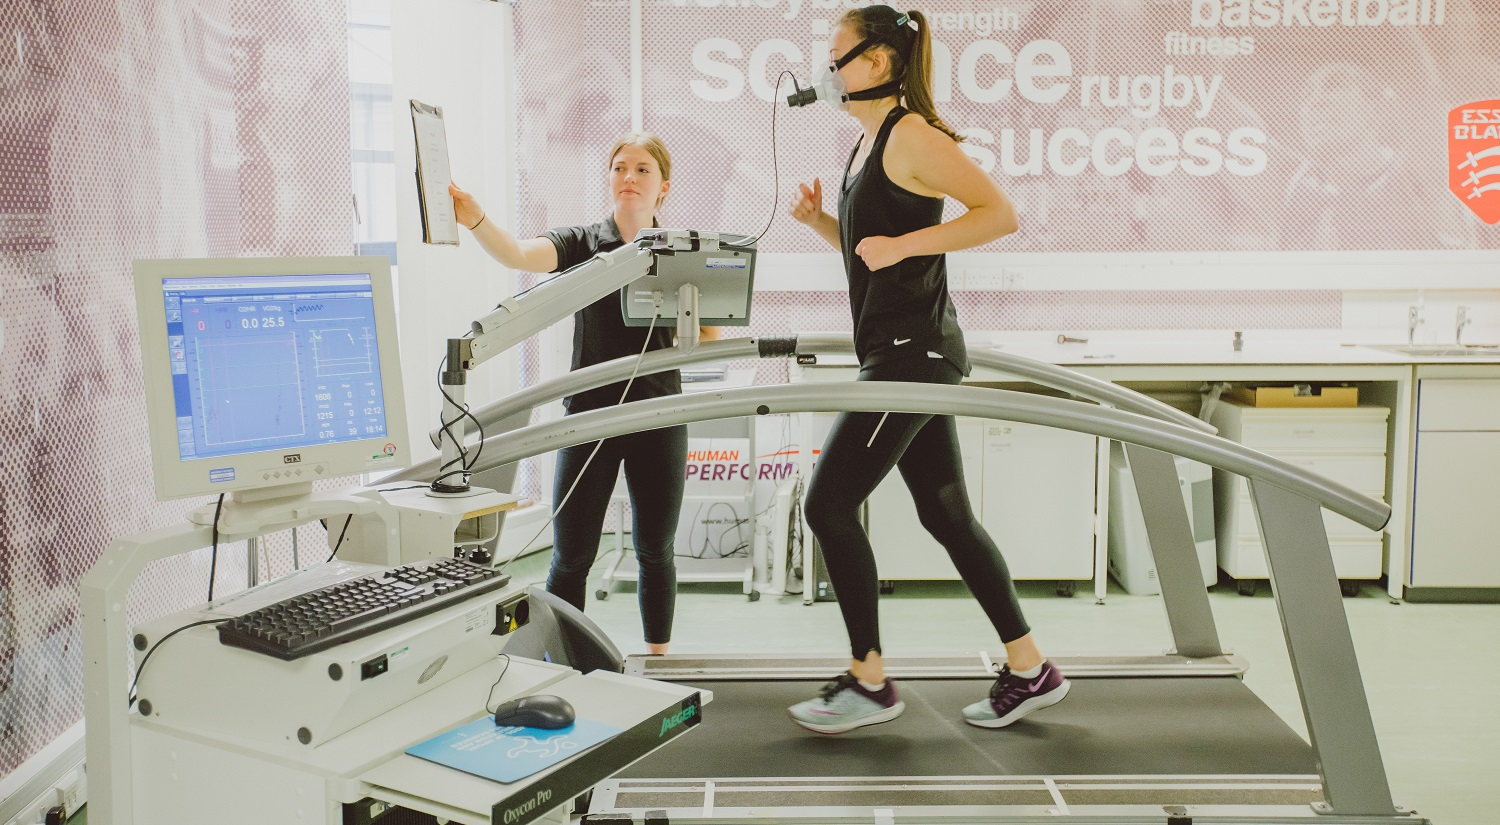 An athlete running on a treadmill while wearing a mask that may be measuring their breathing. A sports scientist is standing next to the treadmill, holding up a clipboard in front of the athlete. A computer tracking information from the athlete is in the foreground.